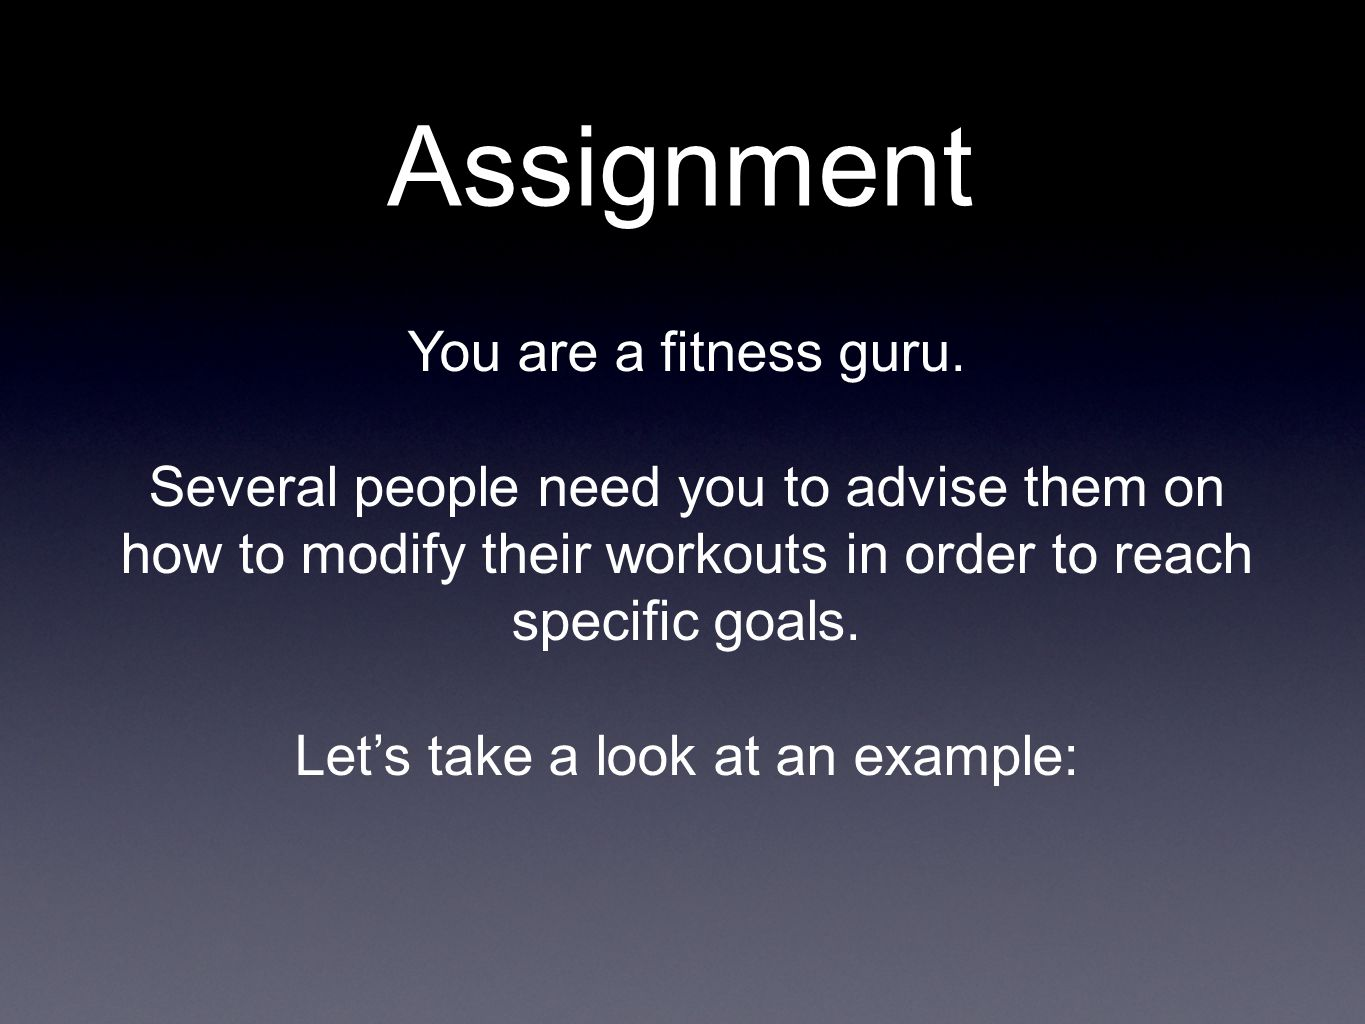 Assignment You are a fitness guru.